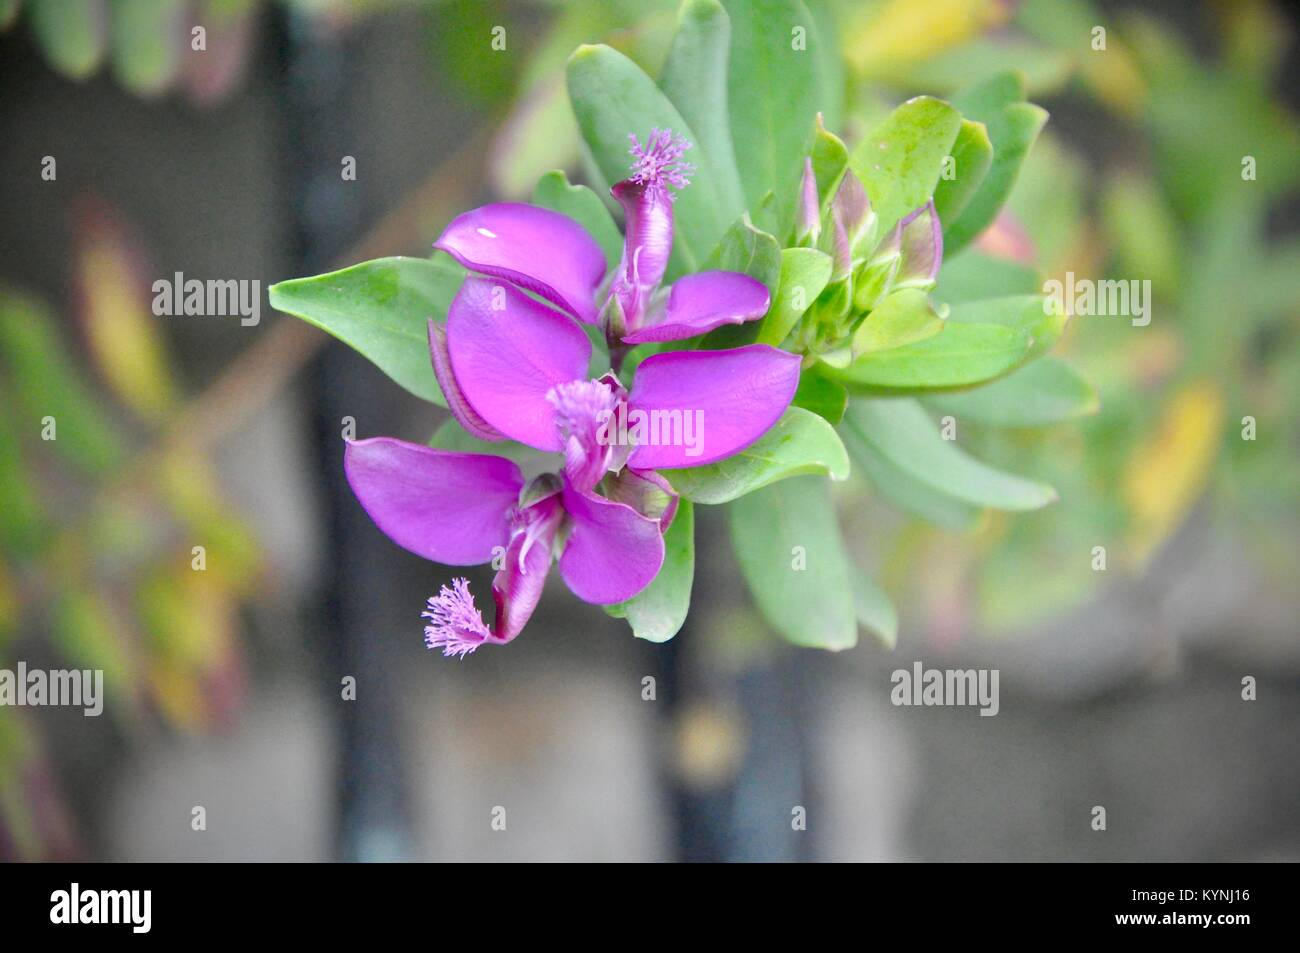 Pink flower Polygala myrtifolia On green background in island of Croatia - Stock Image